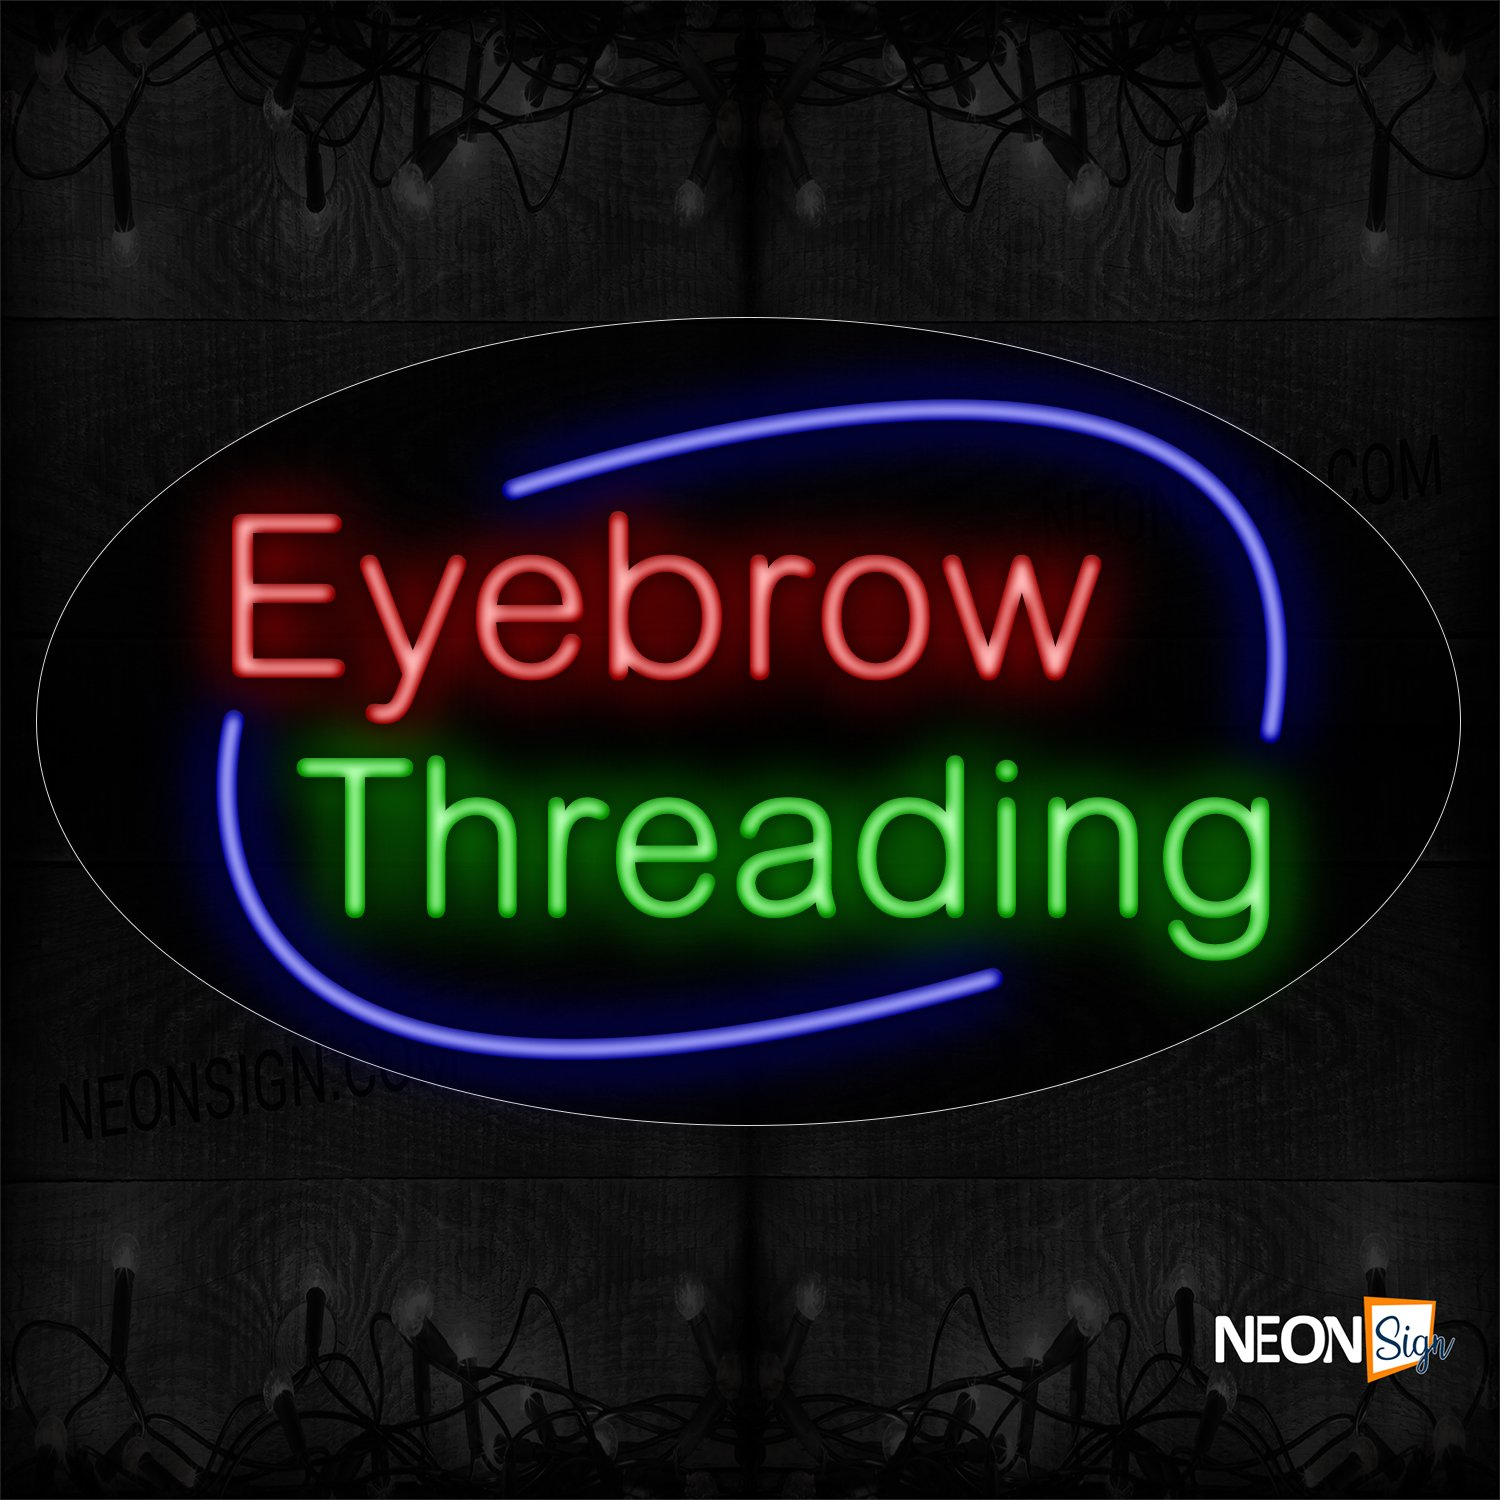 Image of Eyebrow Threading With Blue Arc Border Neon Sign